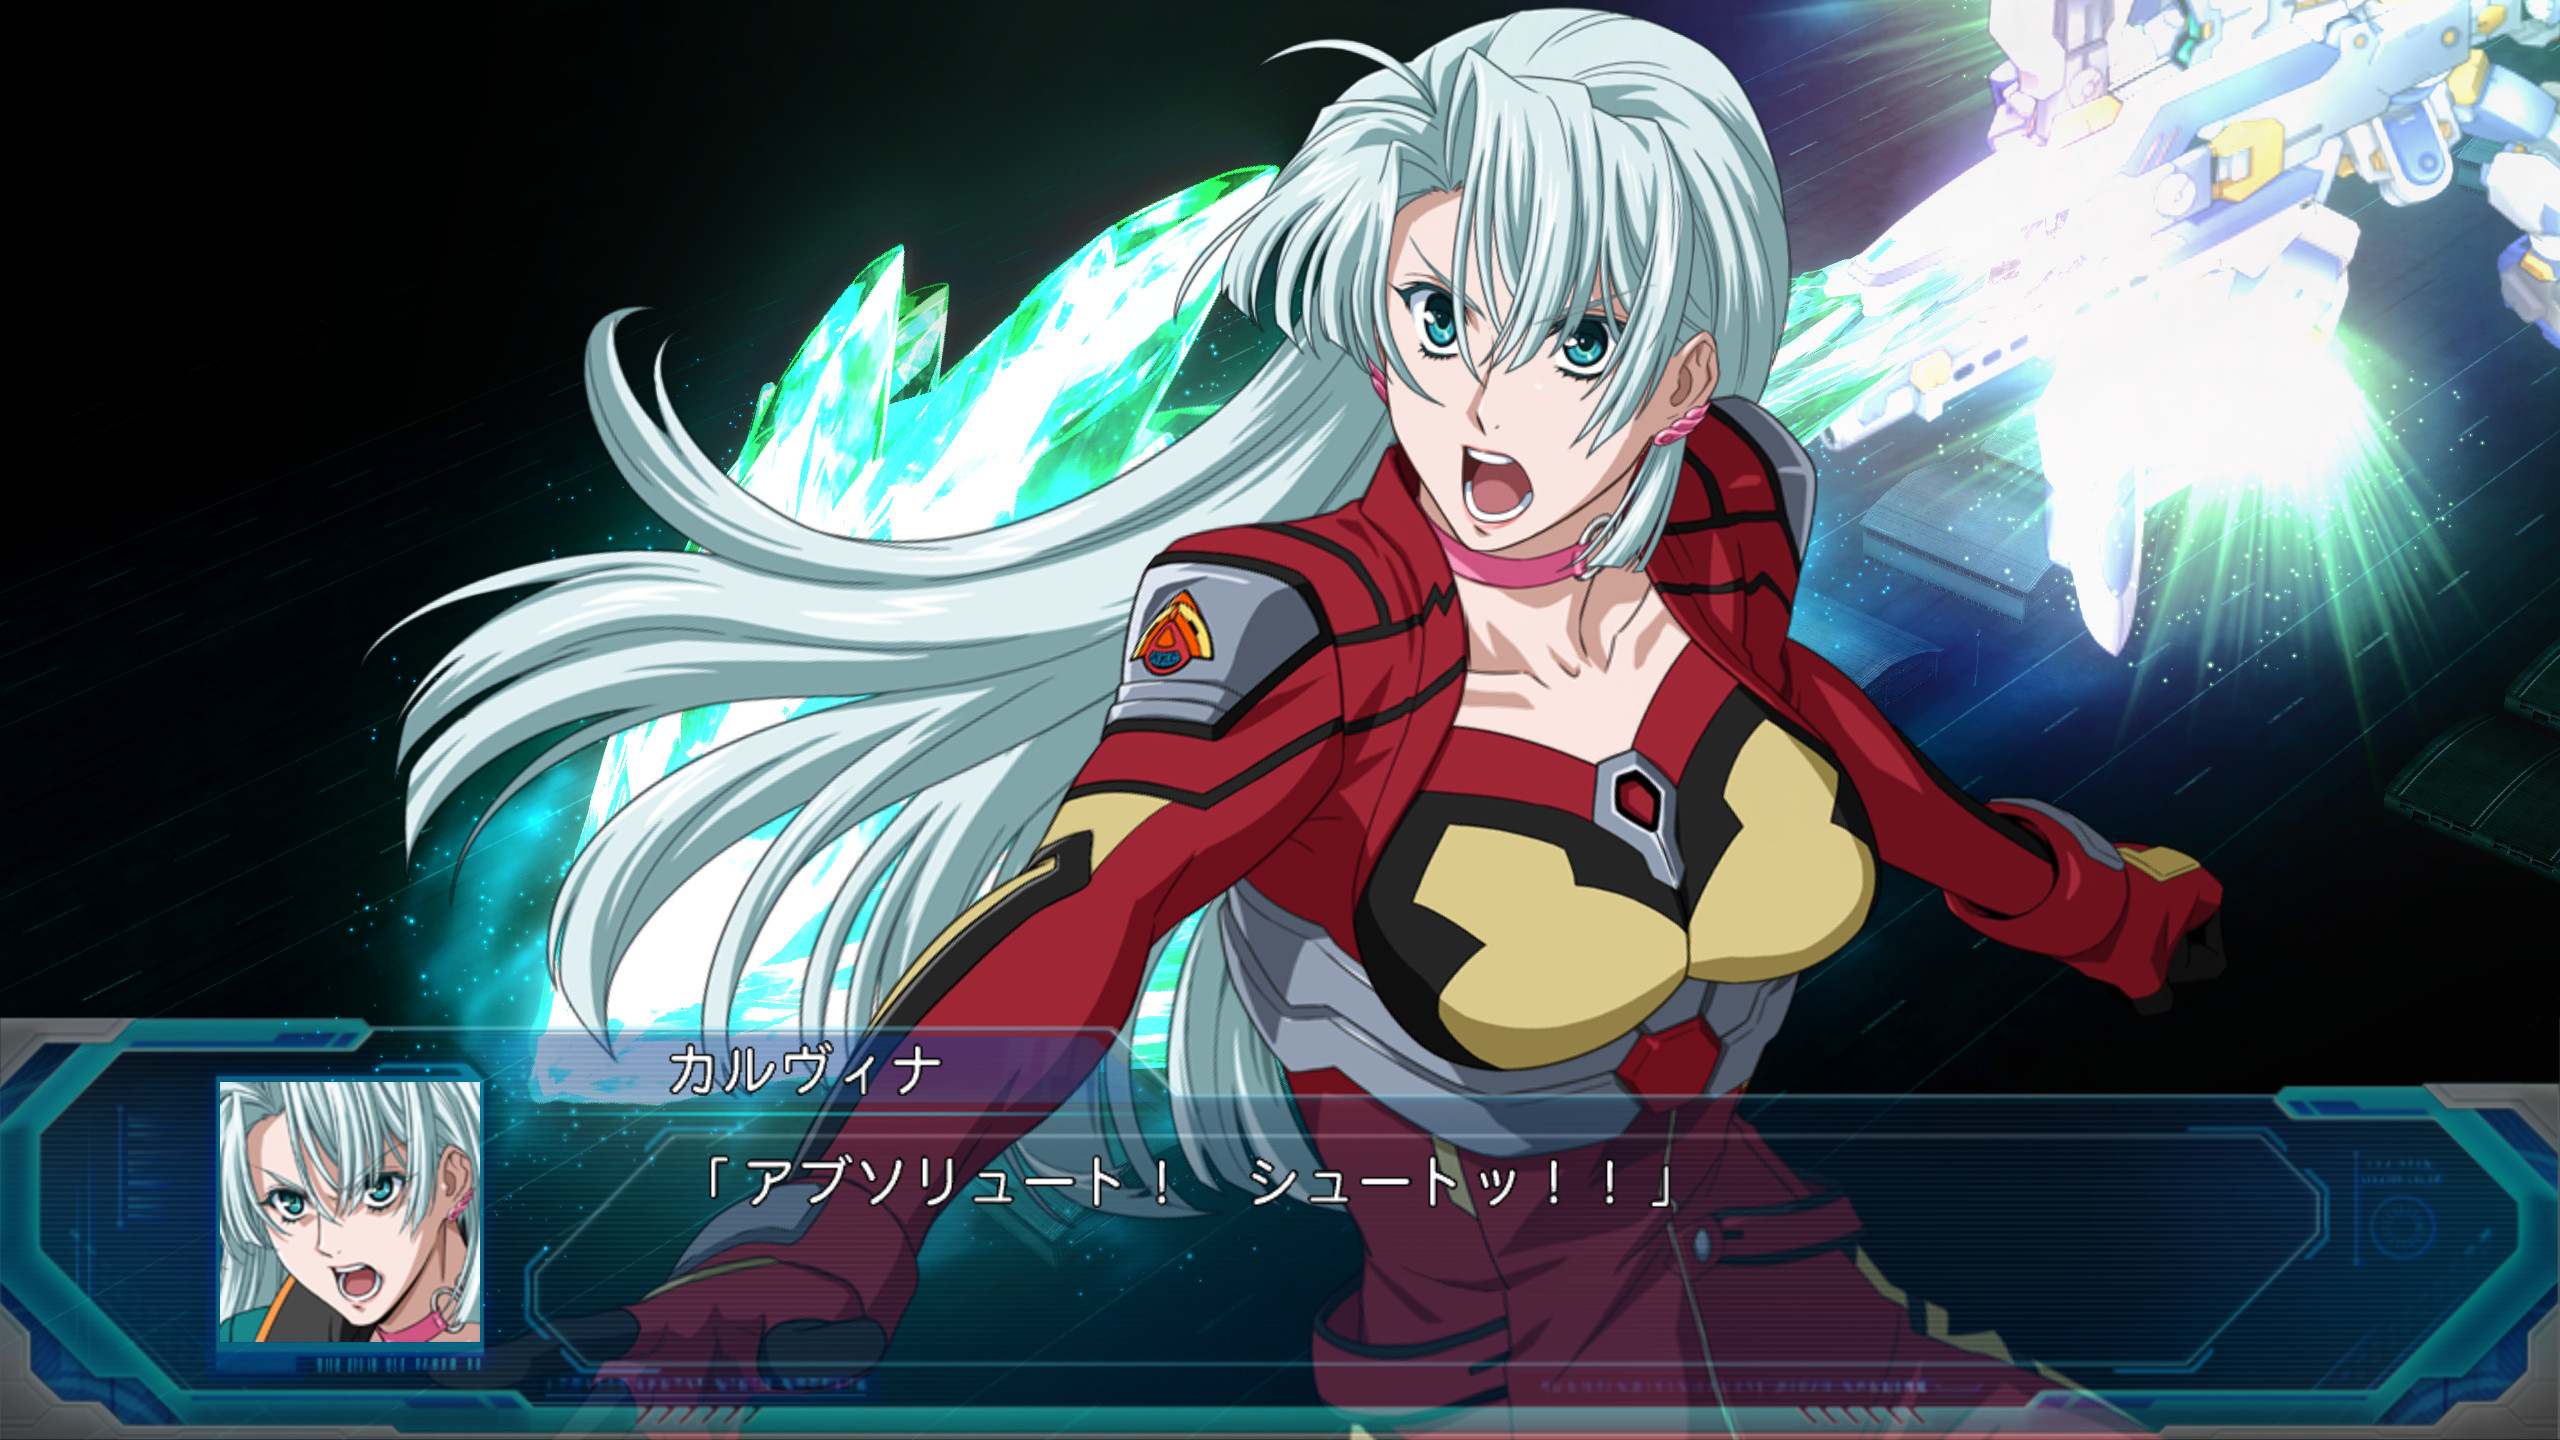 Ps4 Ps3 Exclusive Super Robot Wars Og The Moon Dwellers